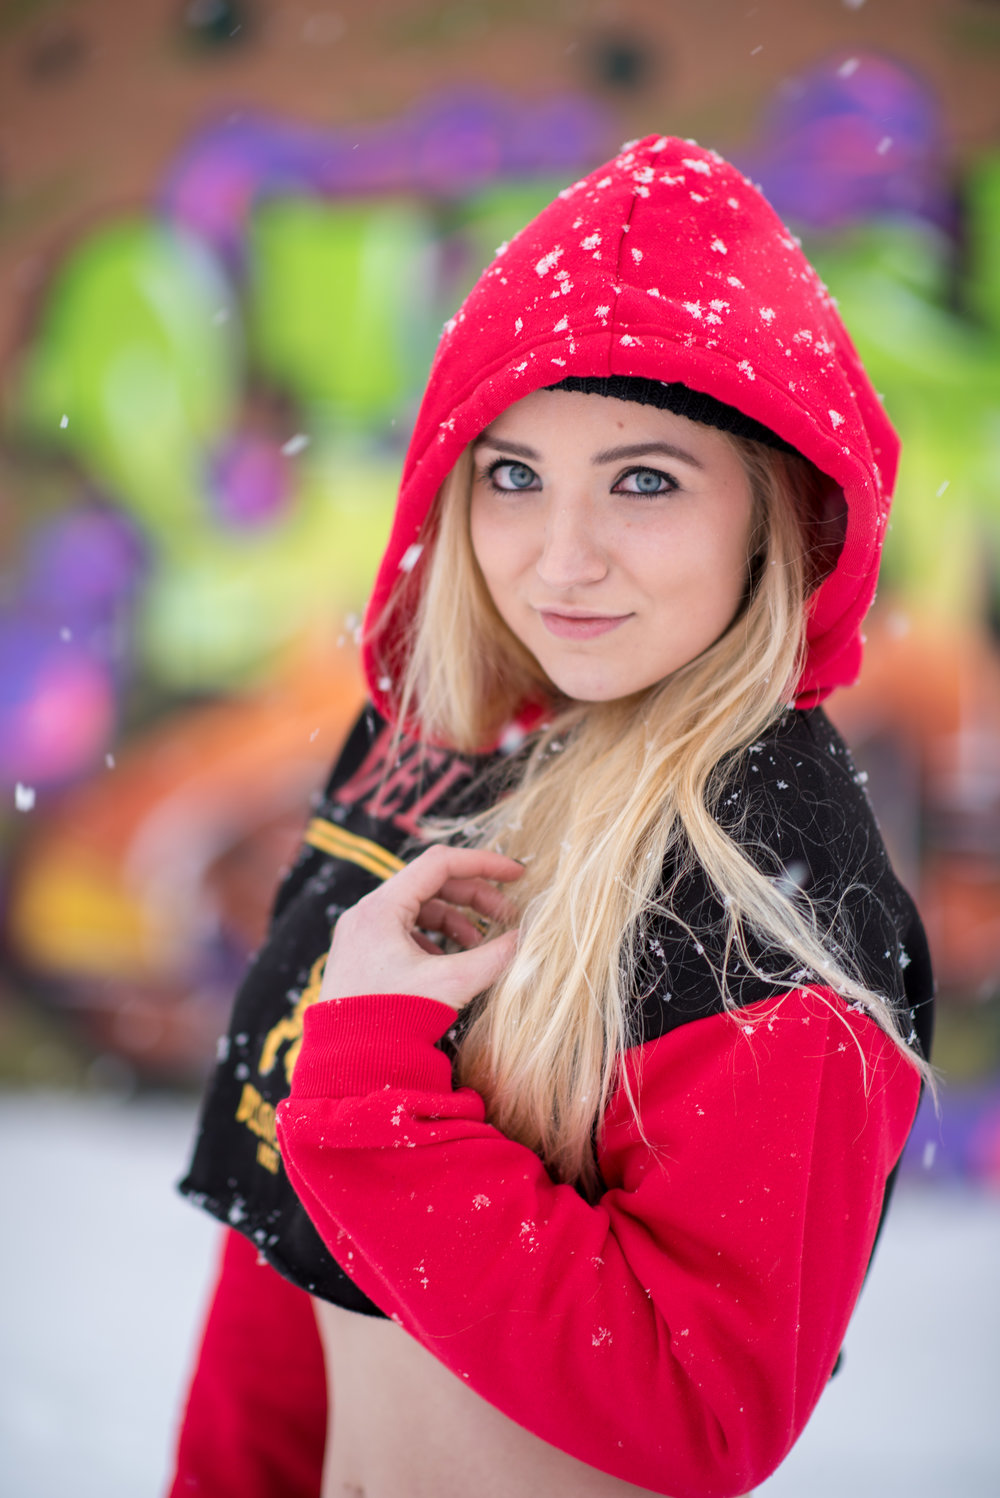 Tyler Harney Photography-Kaereilly Snow Shoot_ (13).jpg